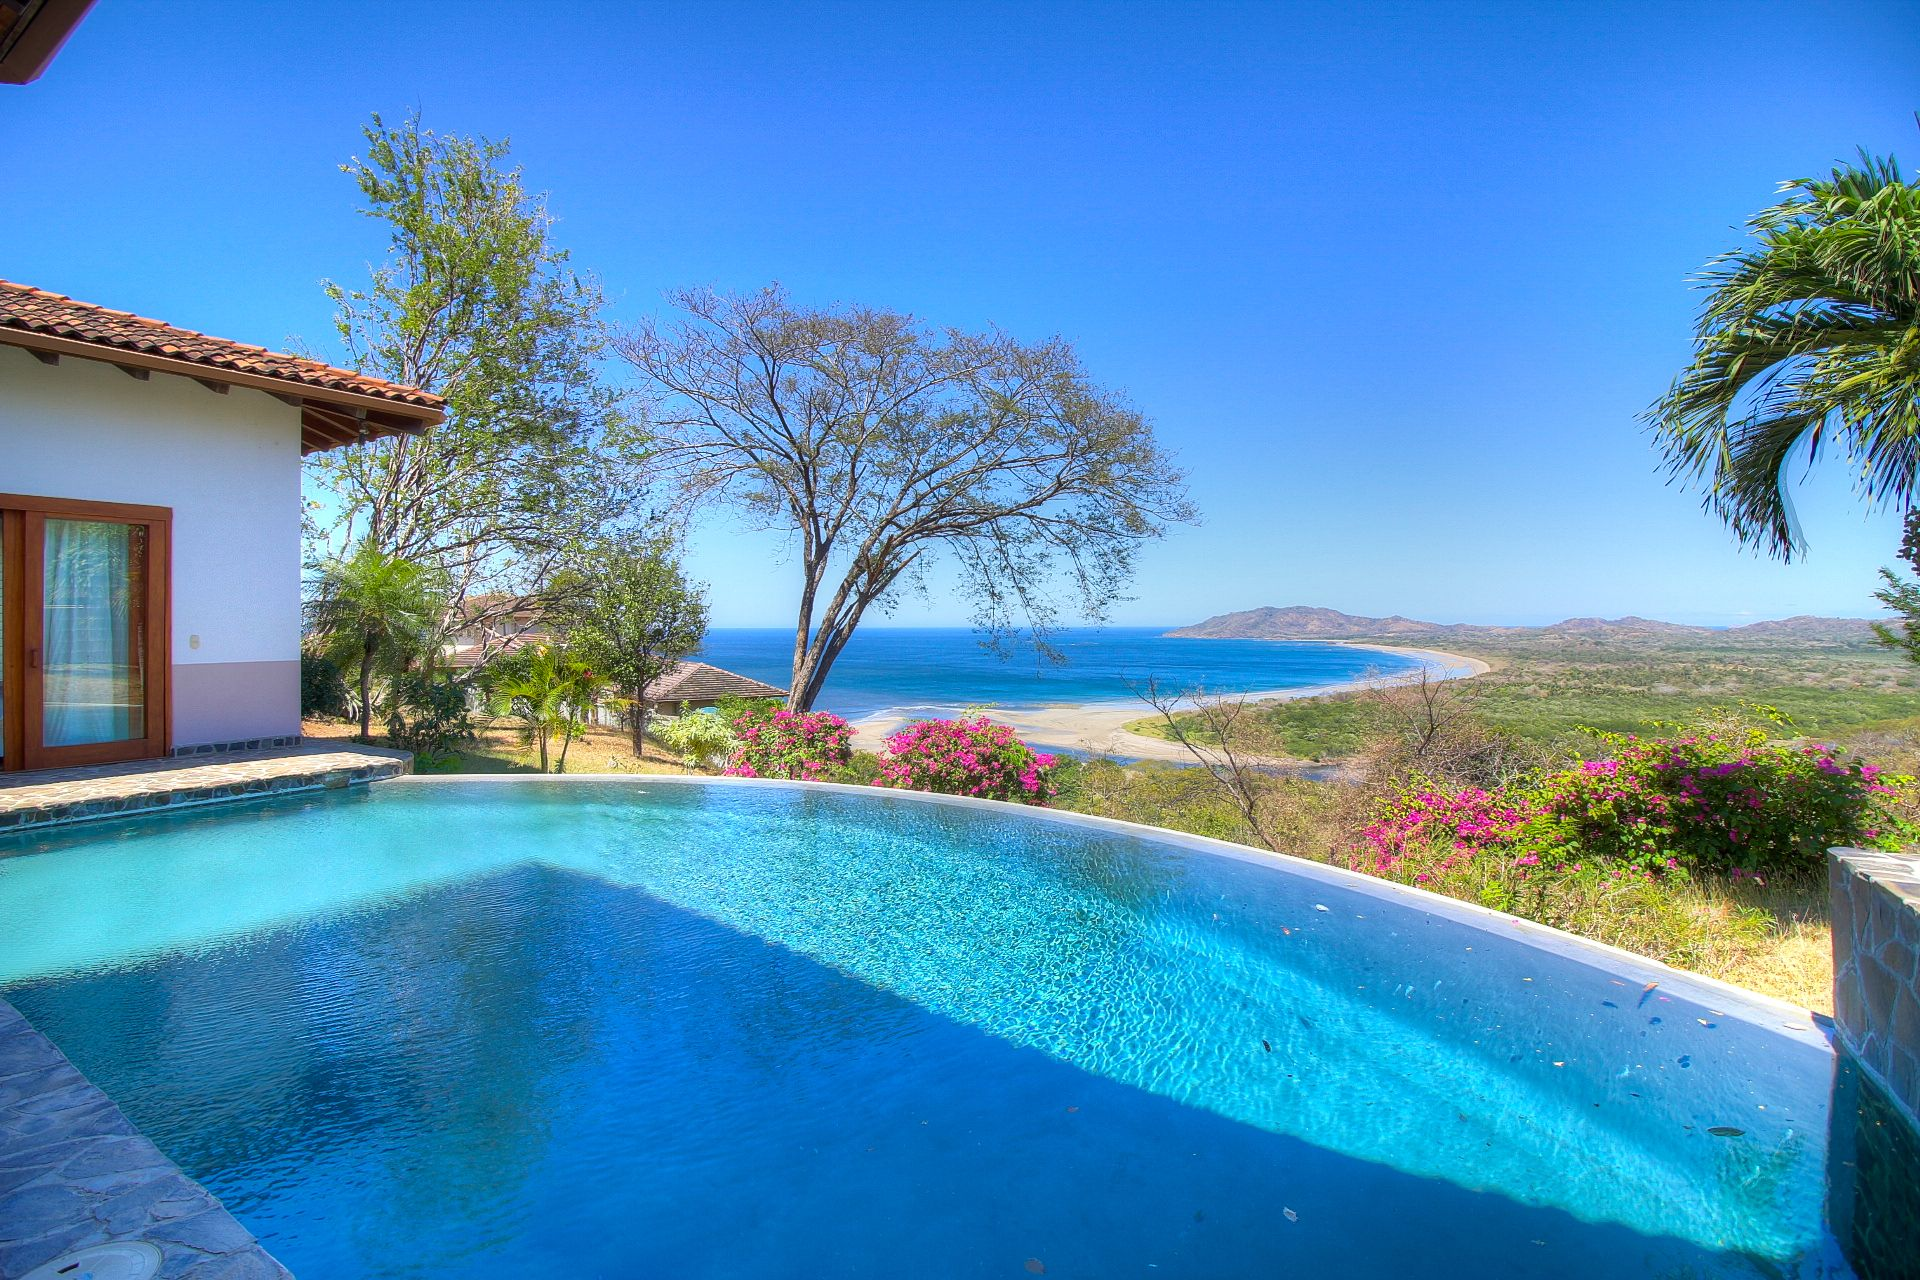 Infinity pool and panoramic view of Tamarindo Bay